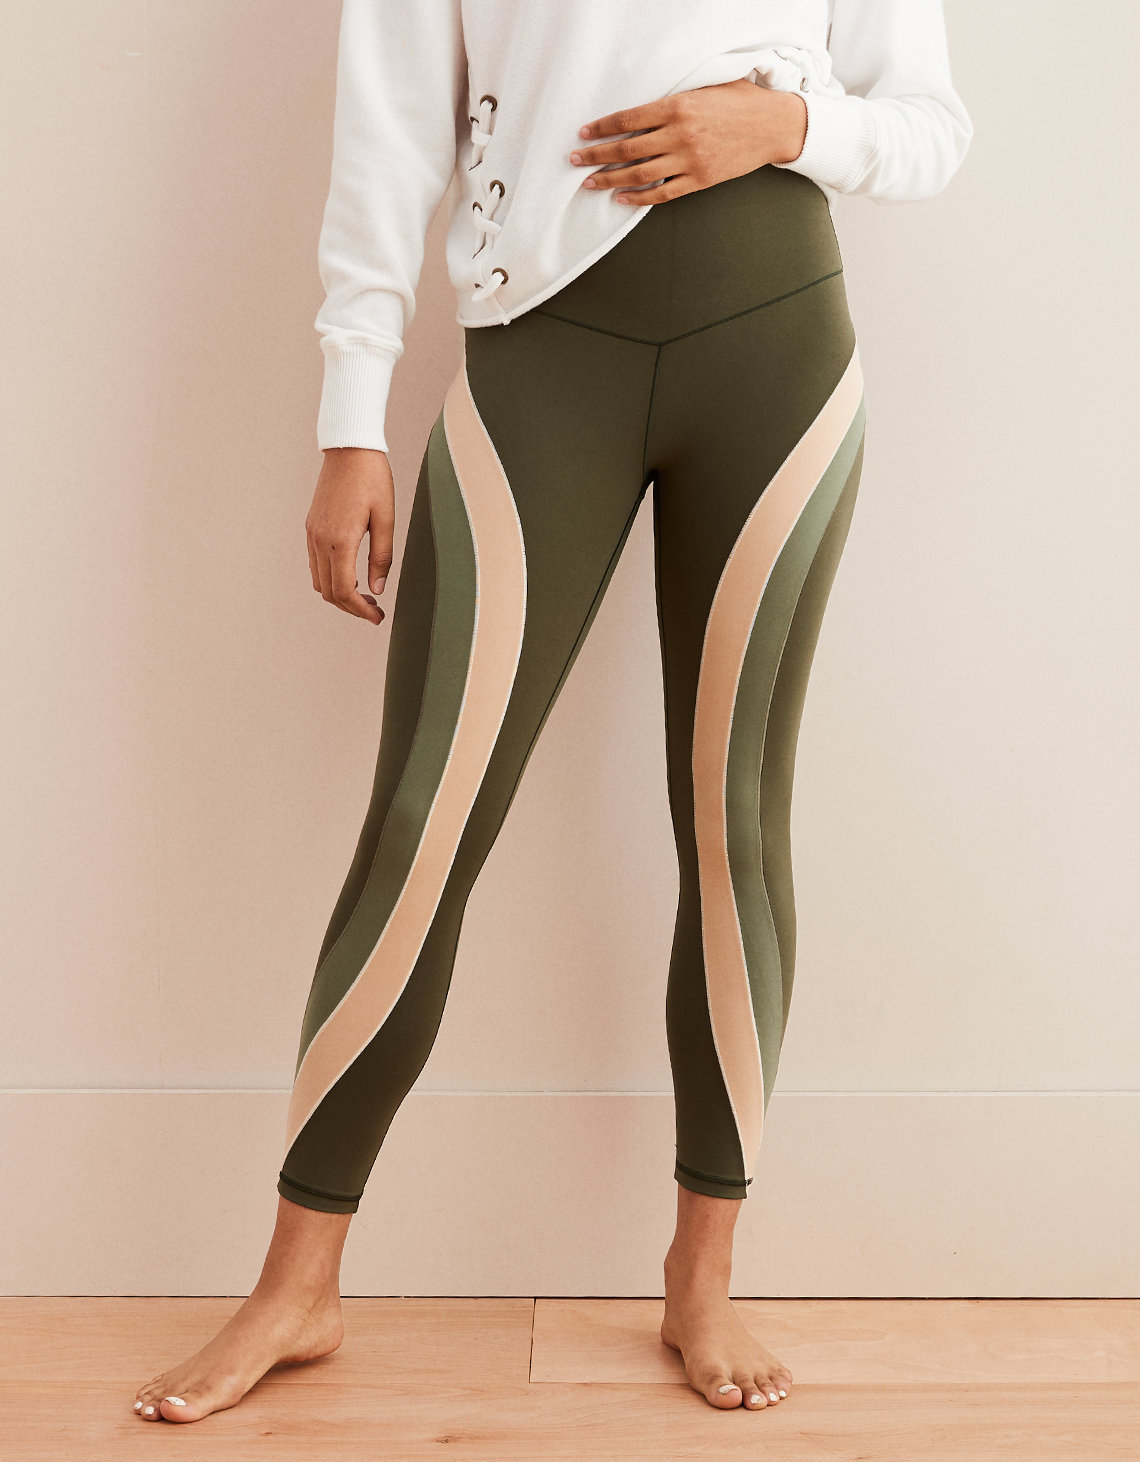 edeaf77c0500d7 Aerie Play Real Me Color Block High Waisted 7 8 Legging. Placeholder image.  Product Image